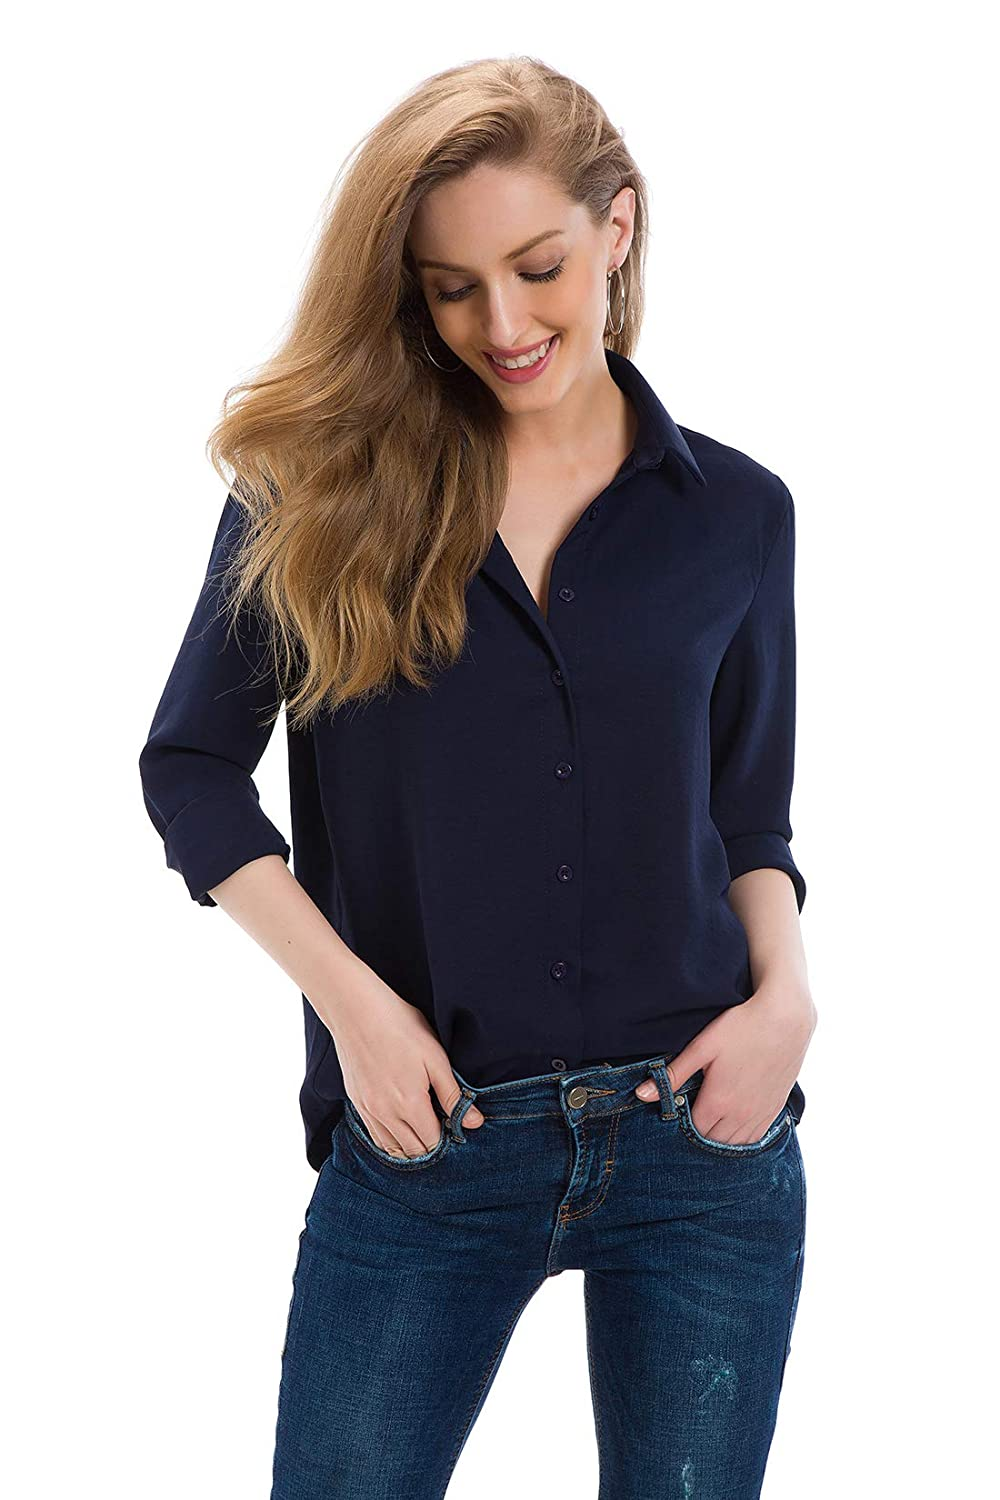 e3b73010701a94 Cantonwalker Women's Long Sleeve Shirt Loose Casual Professional Button  Blouse for Women 5005 at Amazon Women's Clothing store: